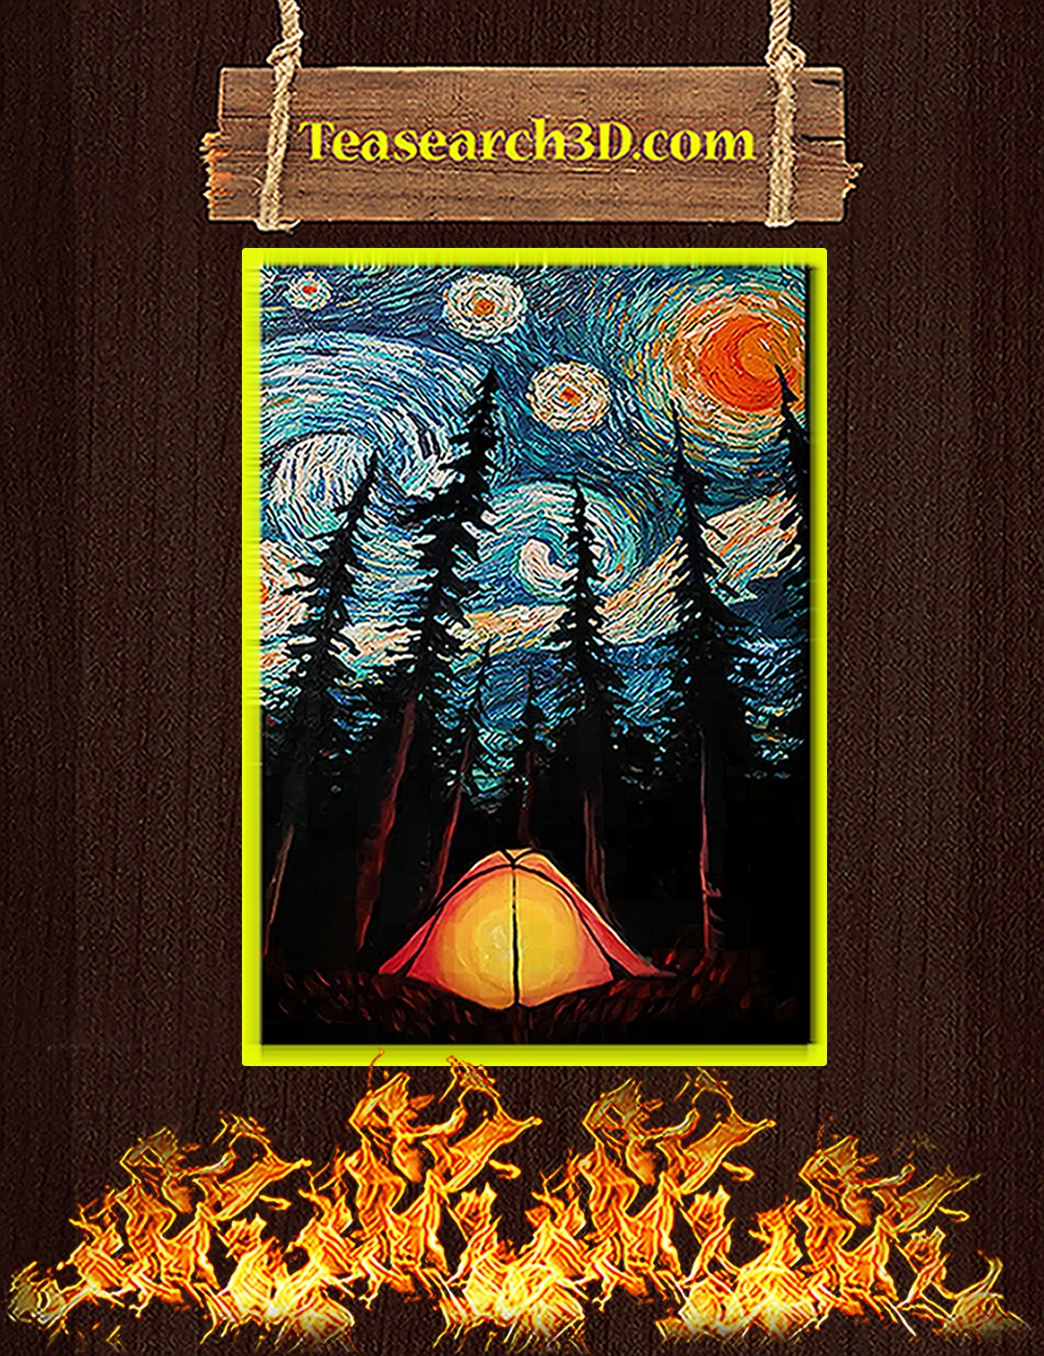 Camping starry night van gogh poster A1